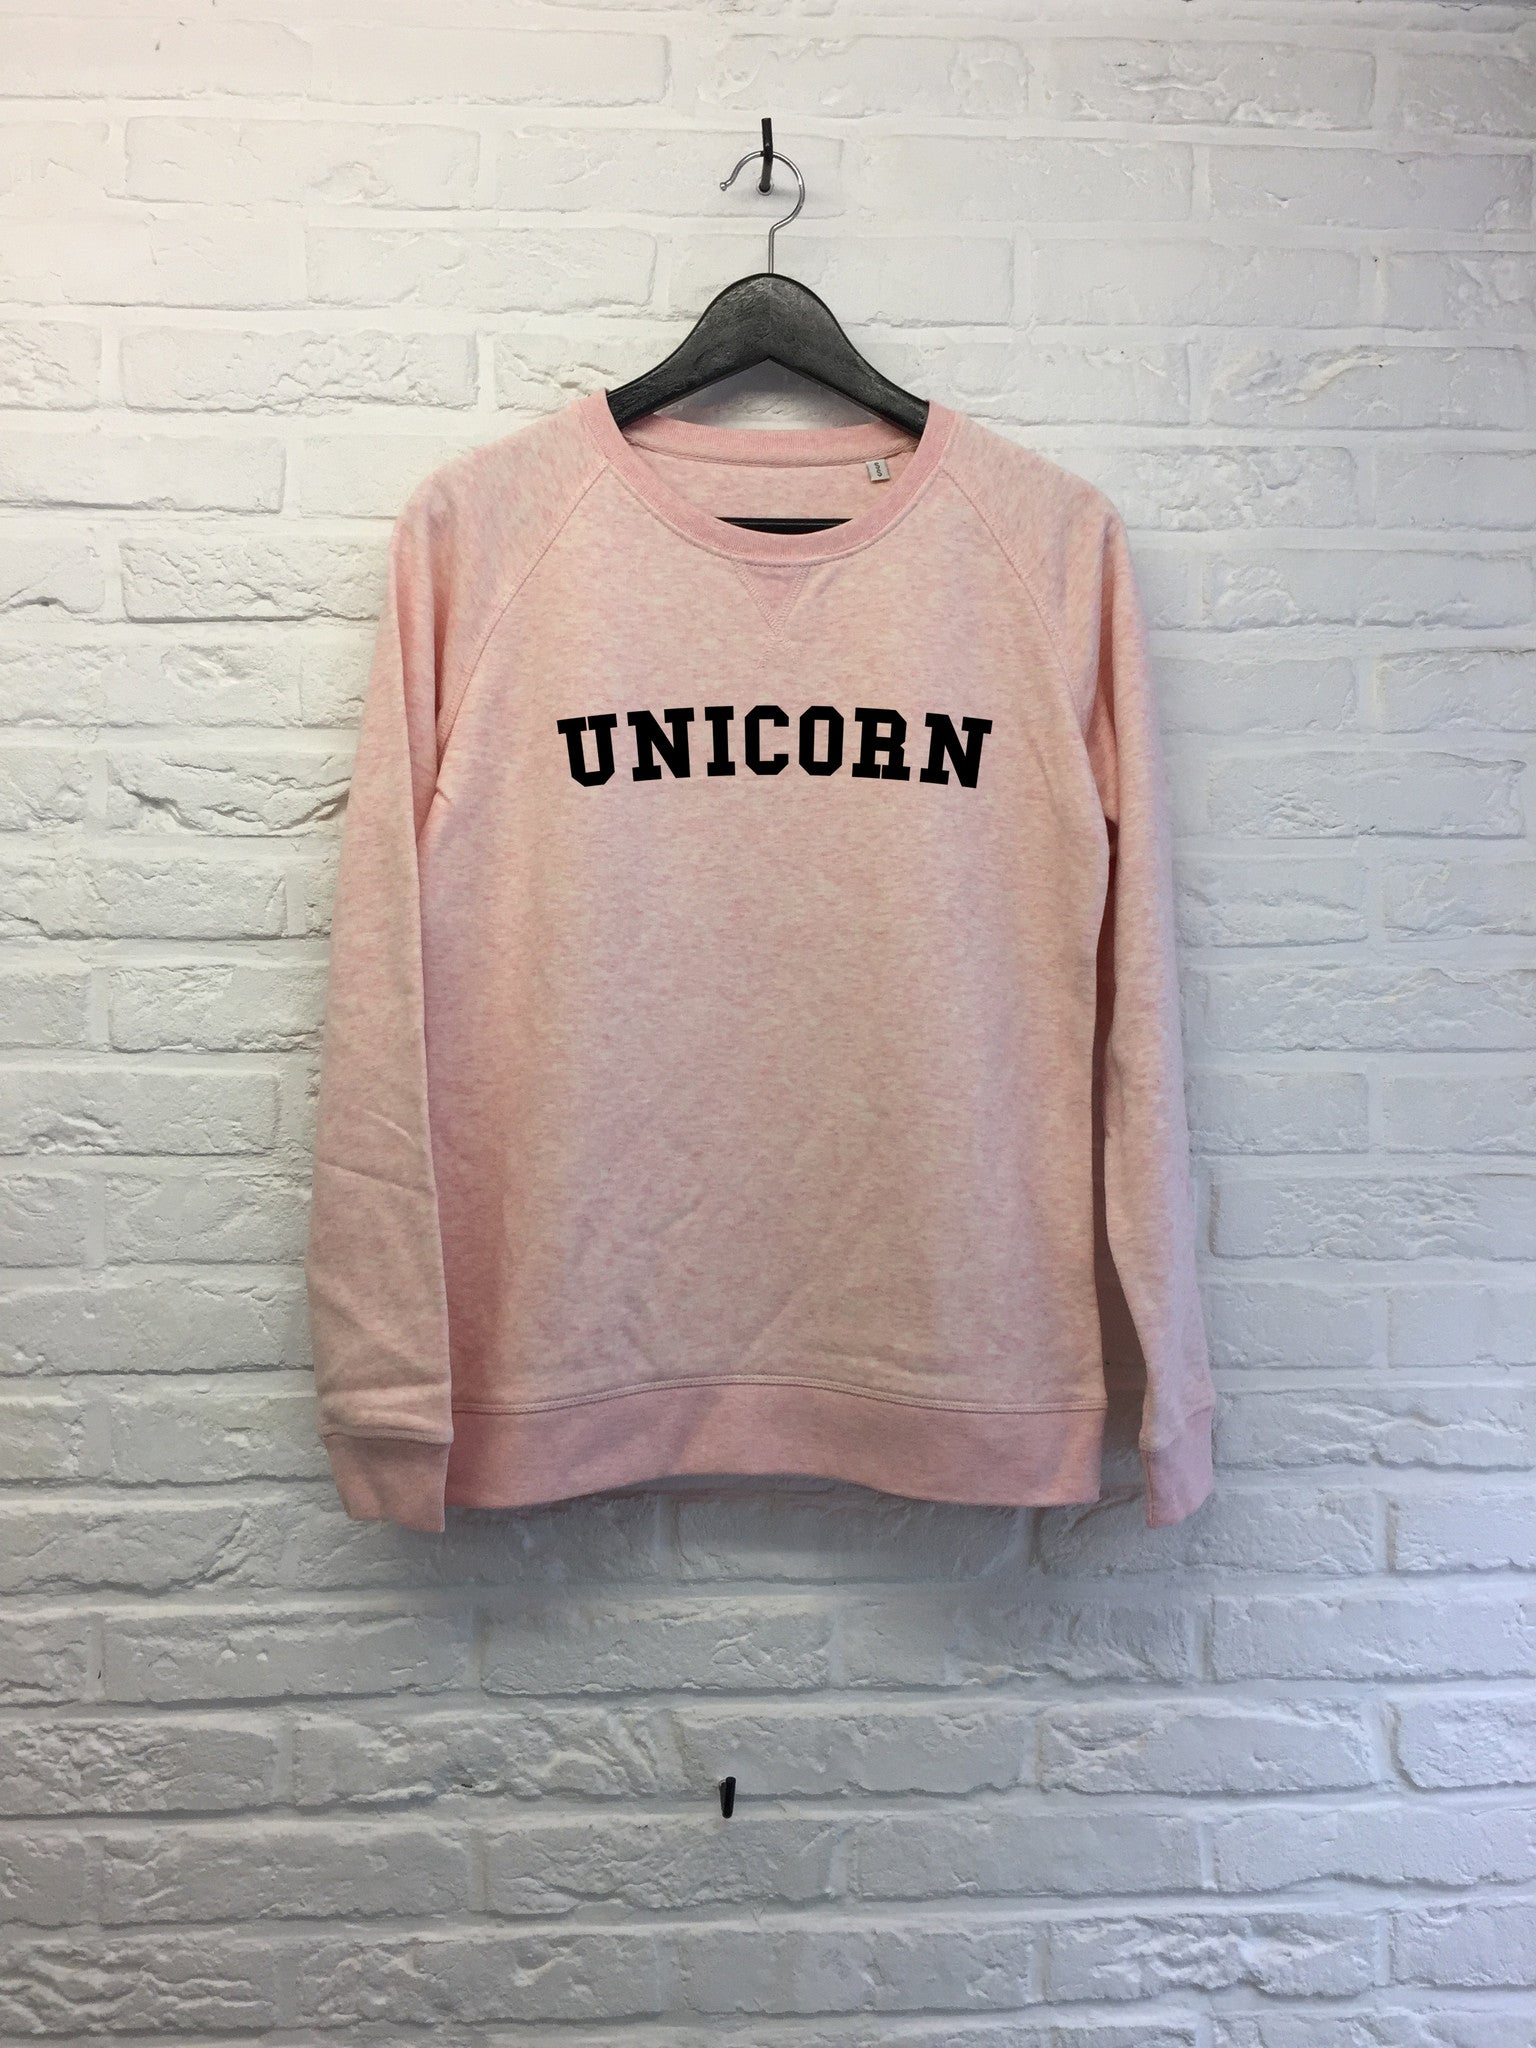 Unicorn - Sweat - Femme-Sweat shirts-Atelier Amelot